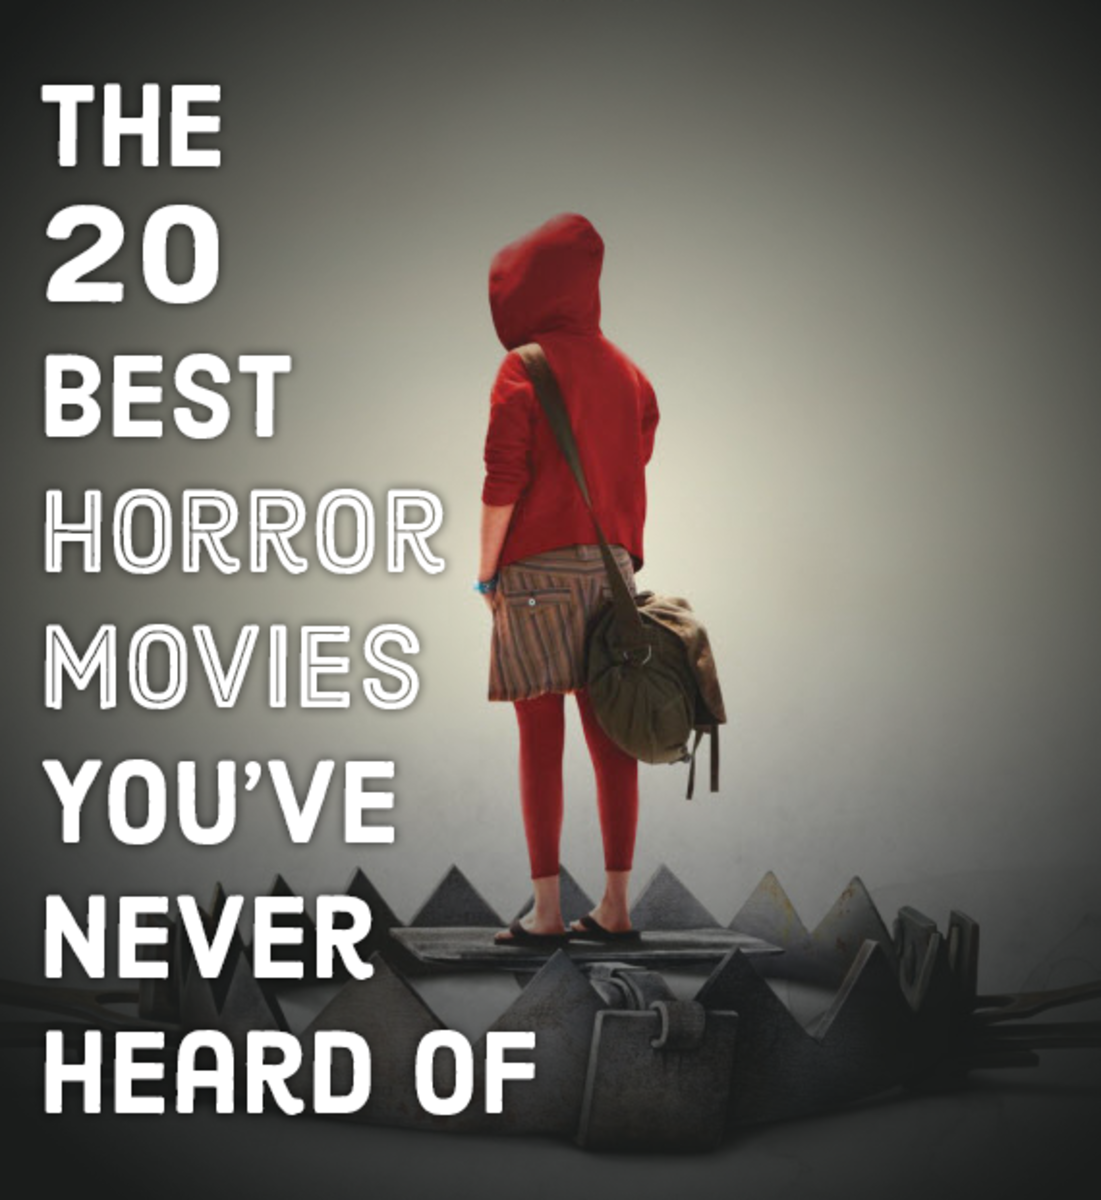 The best horror movies you've never heard of